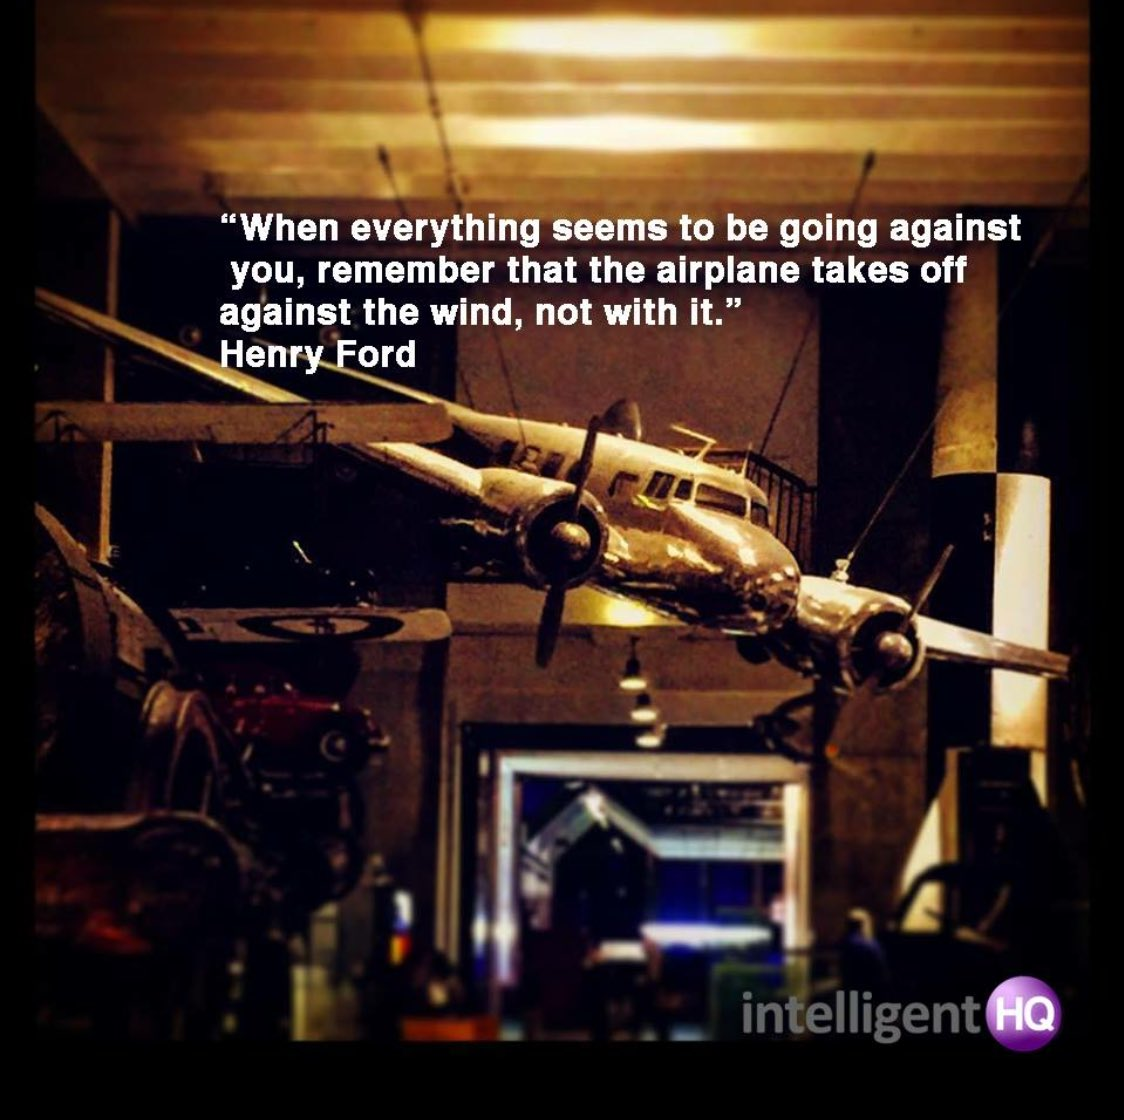 'Remember that the plane takes off against the wind, not with it.' Henry Ford  #determination #willpower #quote https://t.co/rPJTv7k6MU